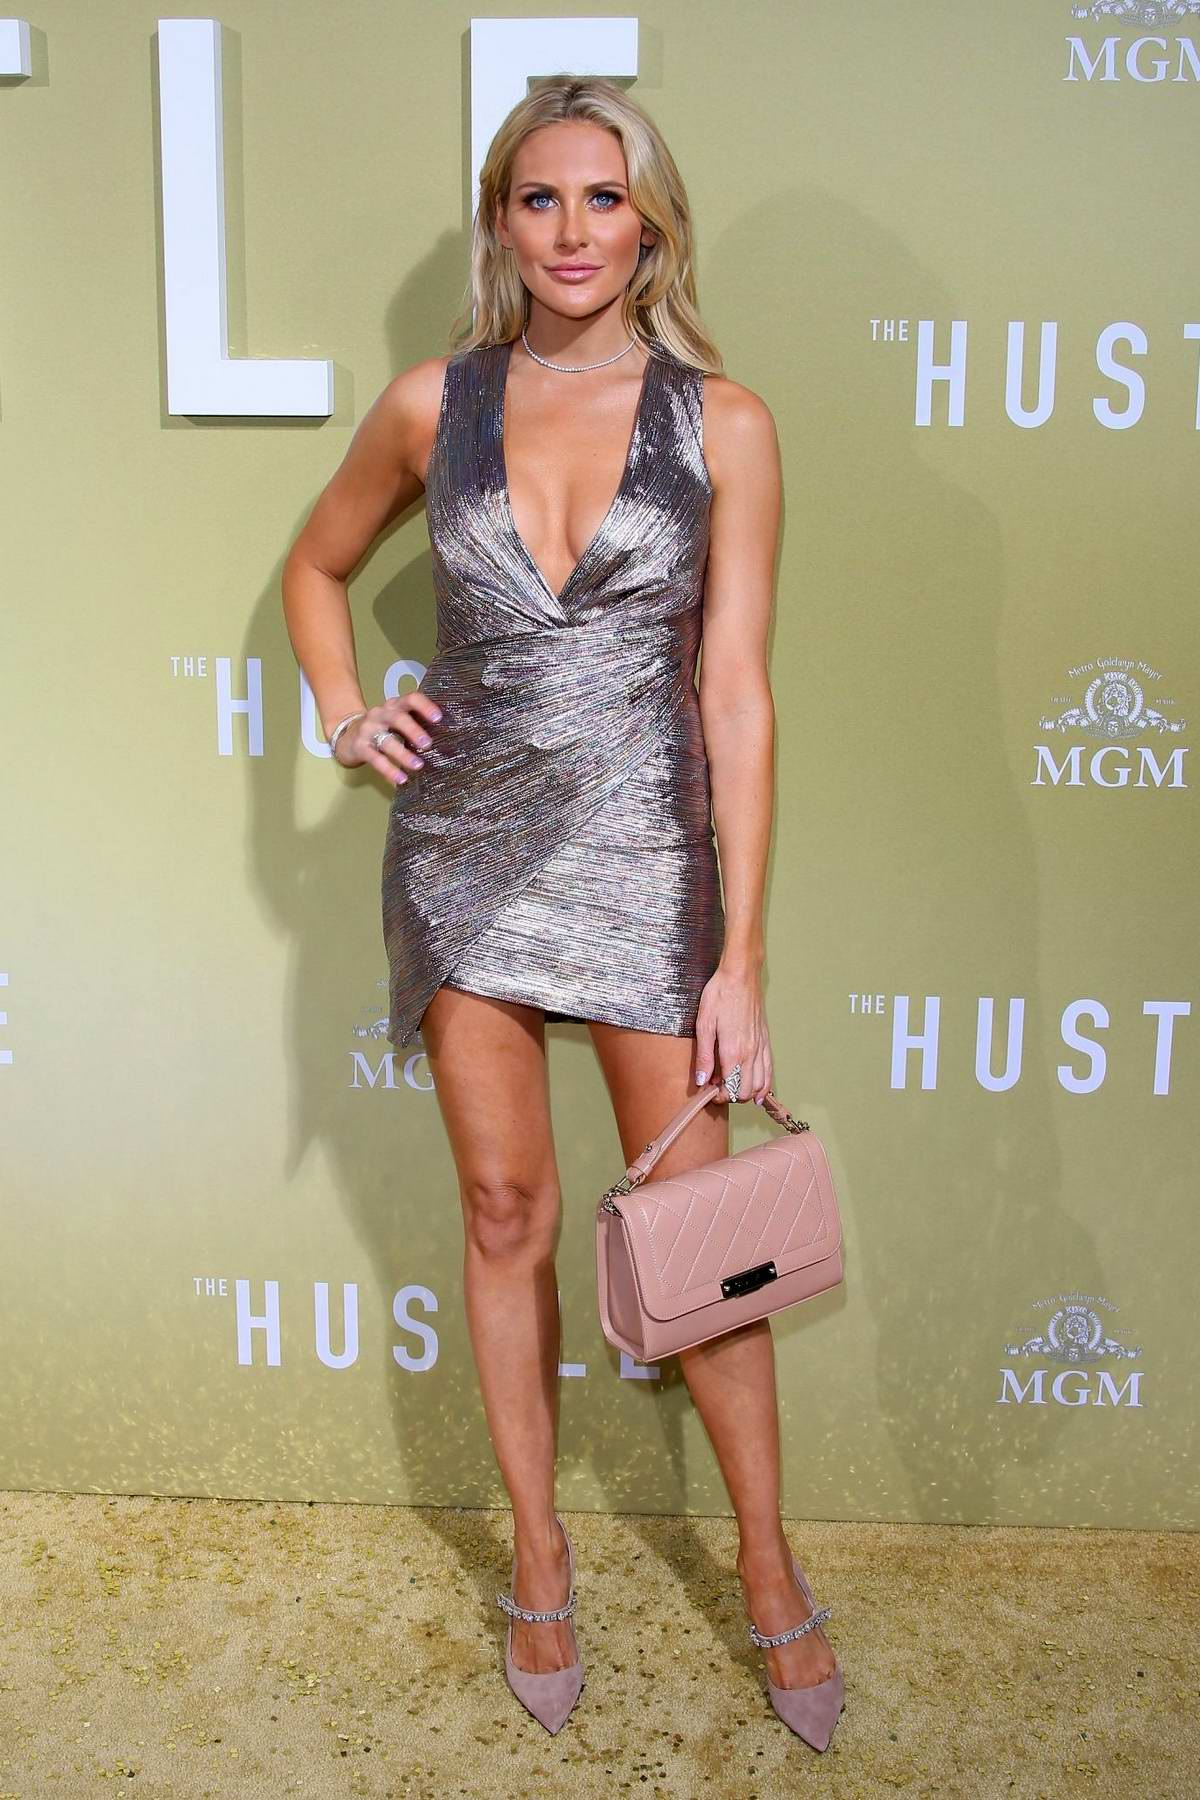 Stephanie Pratt attends the premiere of 'The Hustle' at Arclight Cinerama Dome in Hollywood, California